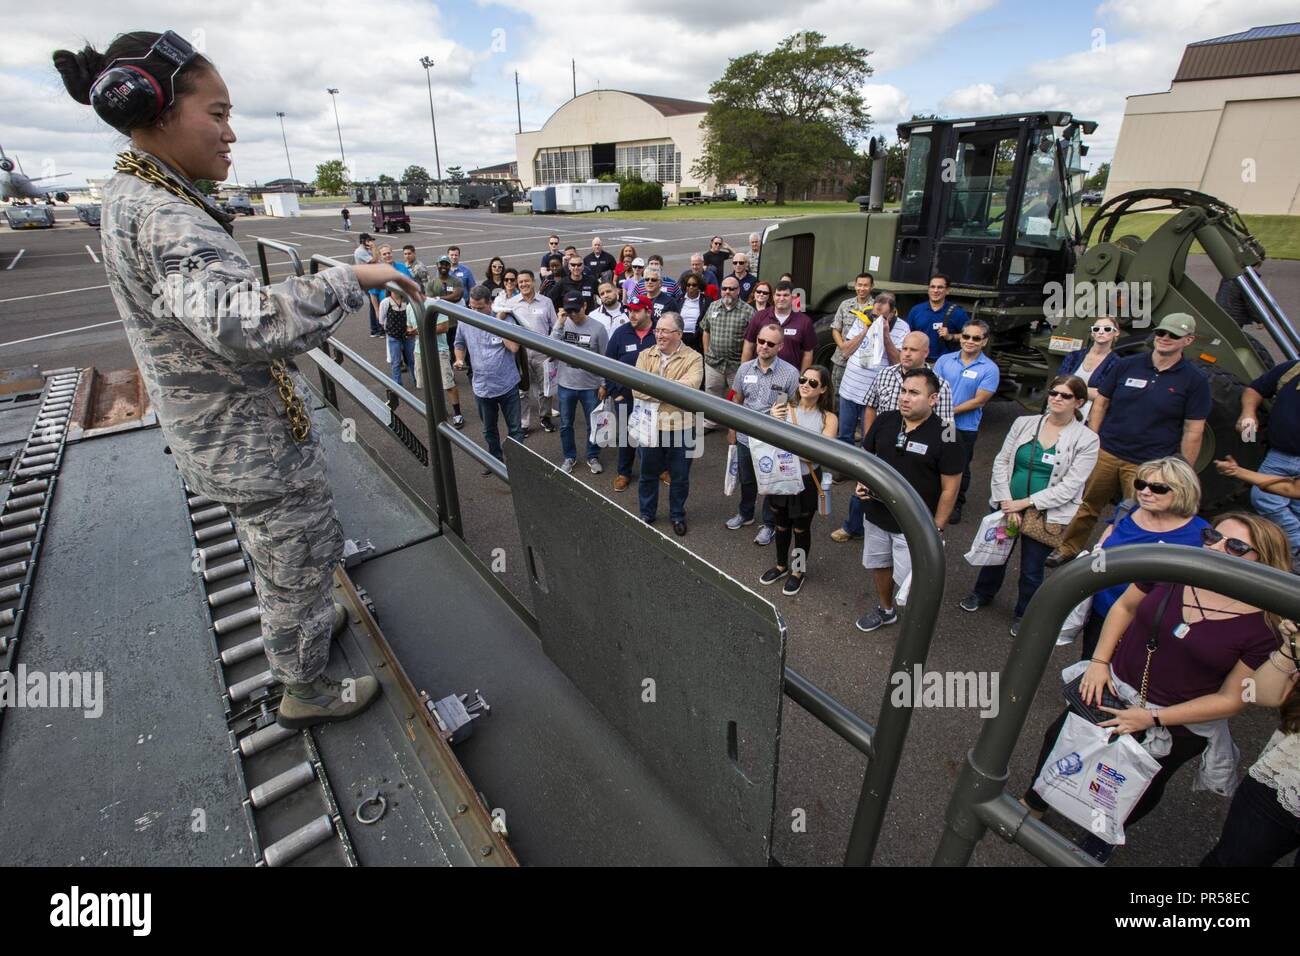 U.S. Air Force Senior Airman Vince N. Tsang, 88th Aerial Port Squadron, 514th Air Mobility Wing, discusses the capabilities of a Tunner 60K aircraft loader/transporter during the 514th Air Mobility Wing Employer Appreciation Day flight Sept. 15, 2018. The event, which included flying in a C-17 Globemaster III, was designed to show the employers what their employees do when they are serving with the 514th. The 514th is an Air Force Reserve Command Unit. - Stock Image